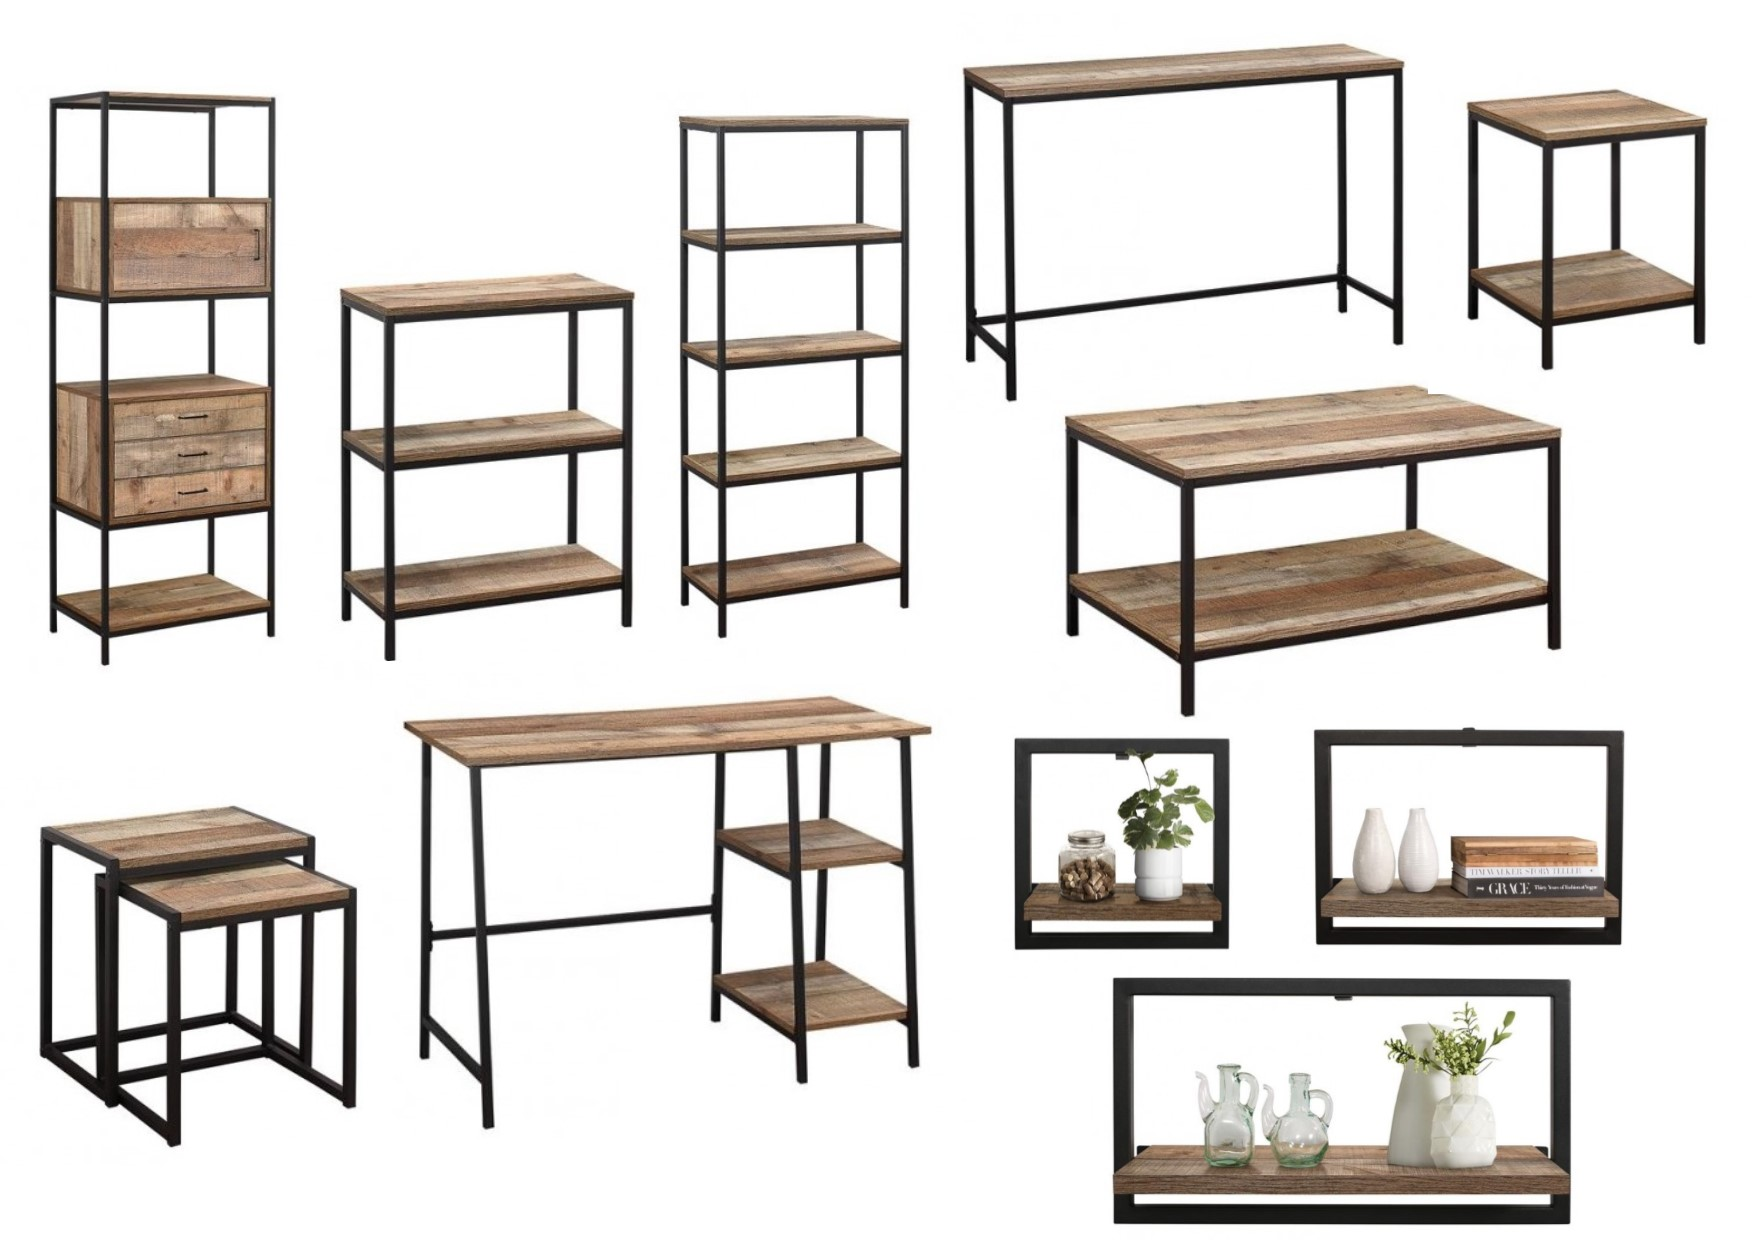 urban industrial furniture. Birlea Urban Industrial Living Furniture - Shelving, Coffee, Side \u0026 Nest Tables